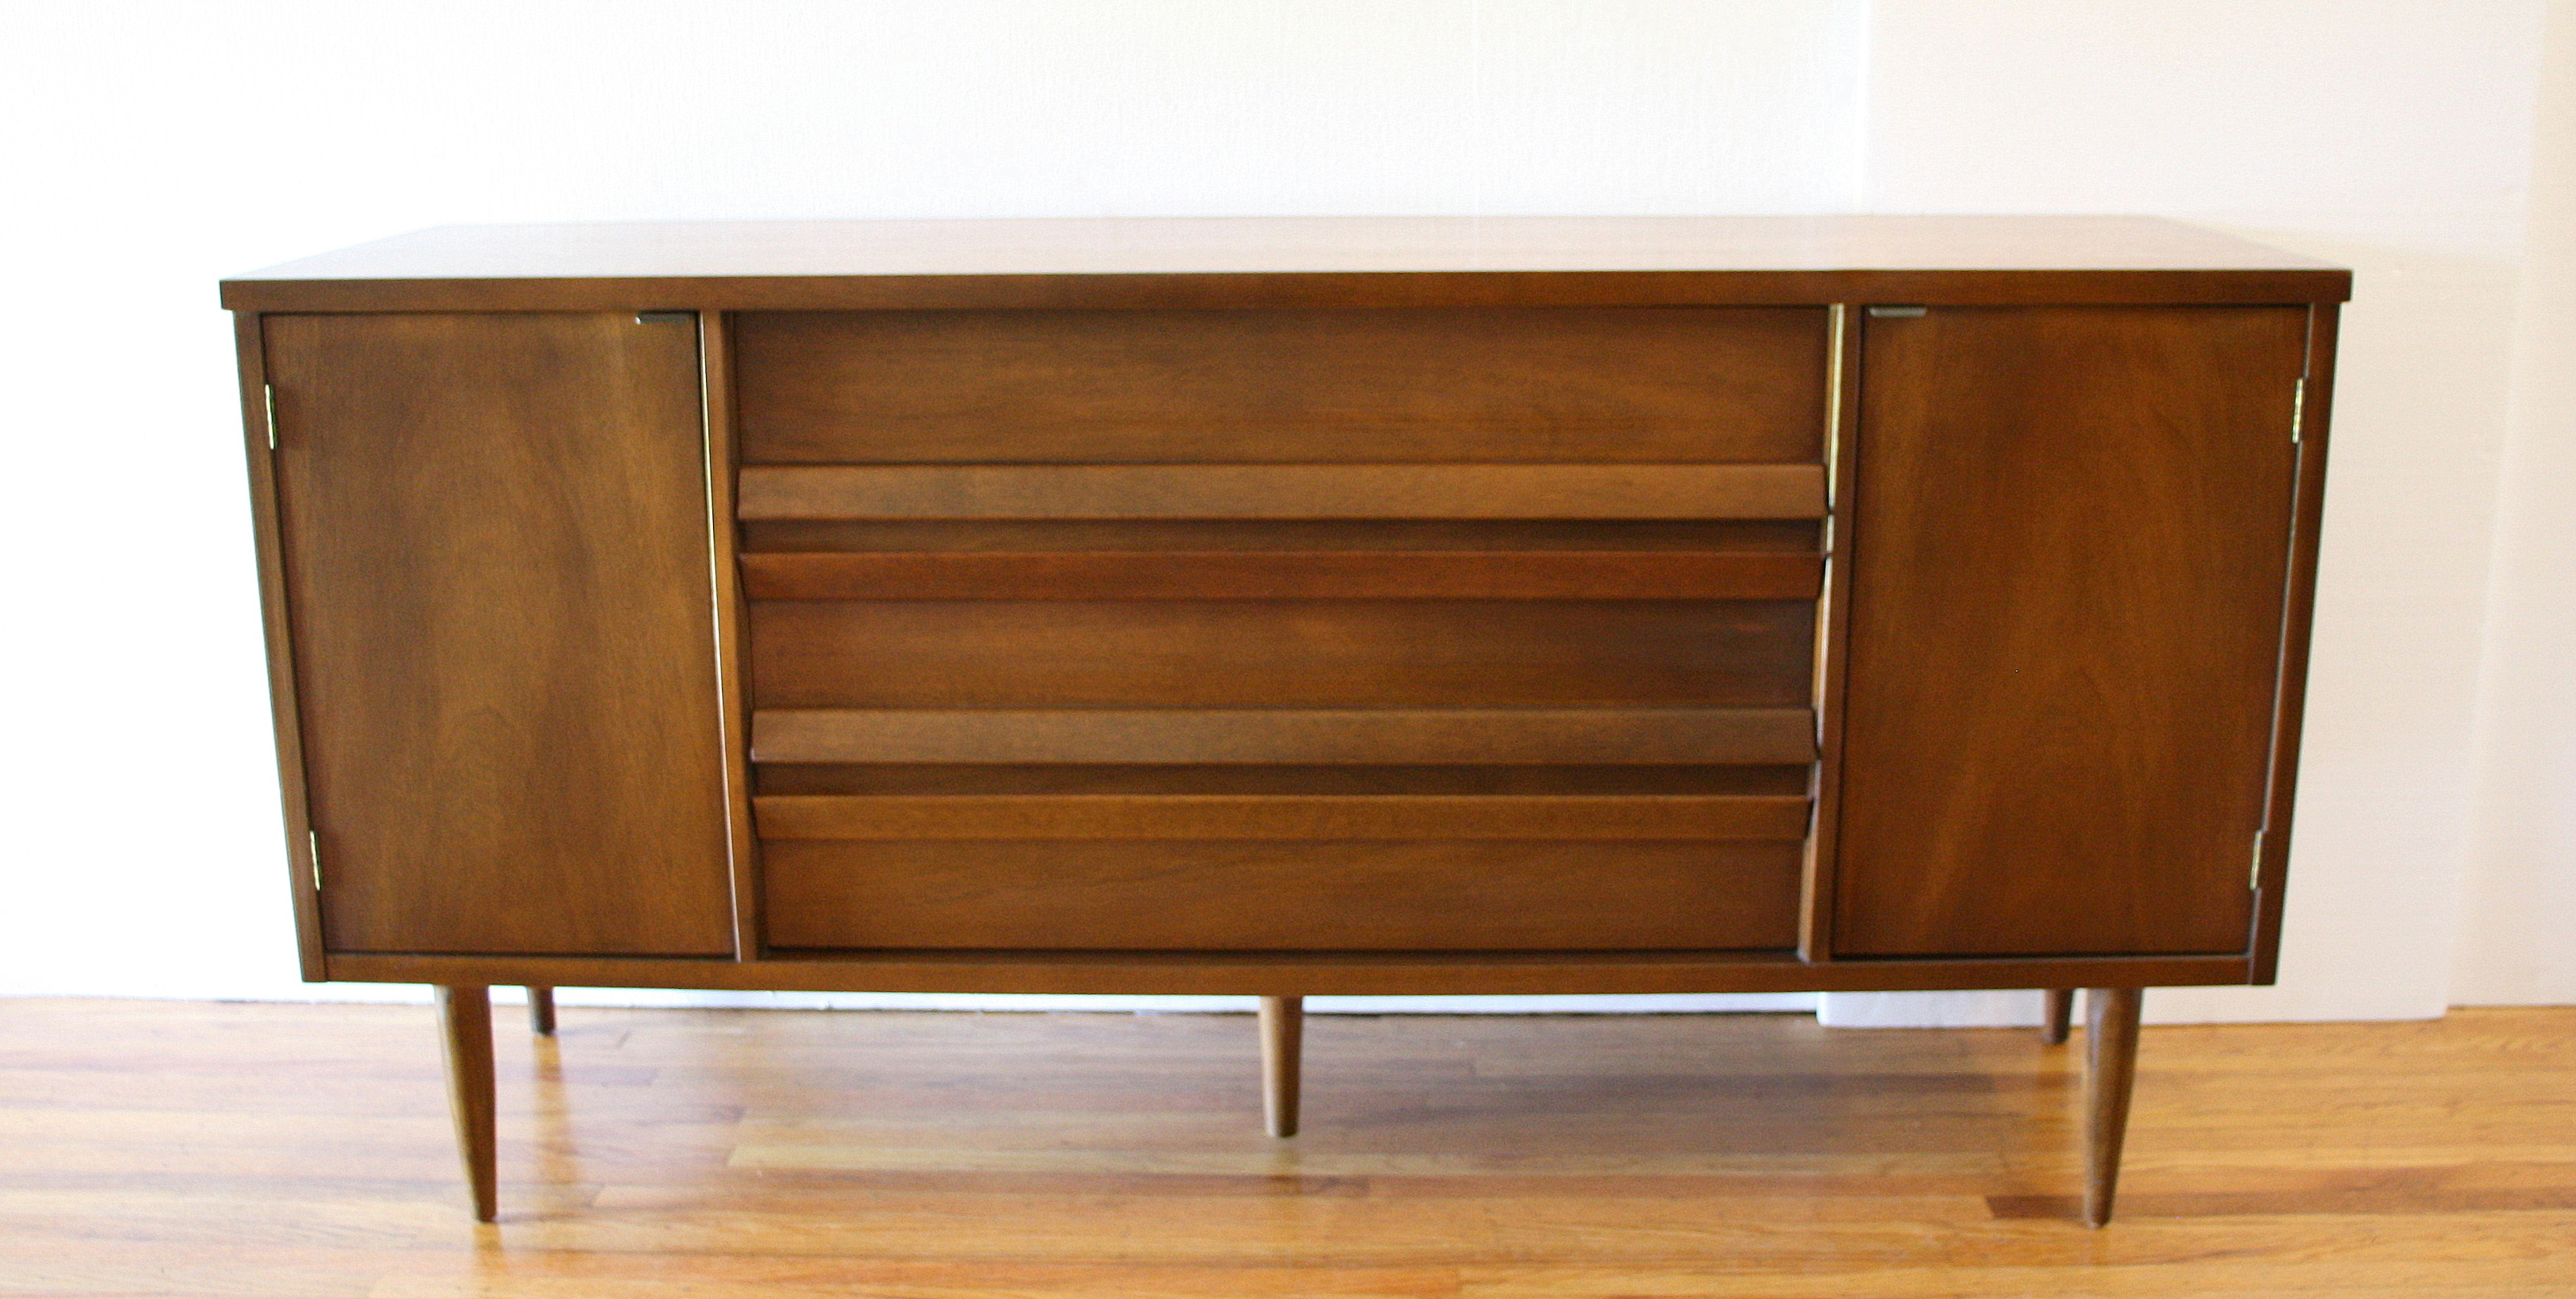 Bassett dual cabinet credenza angled pulls 2.JPG